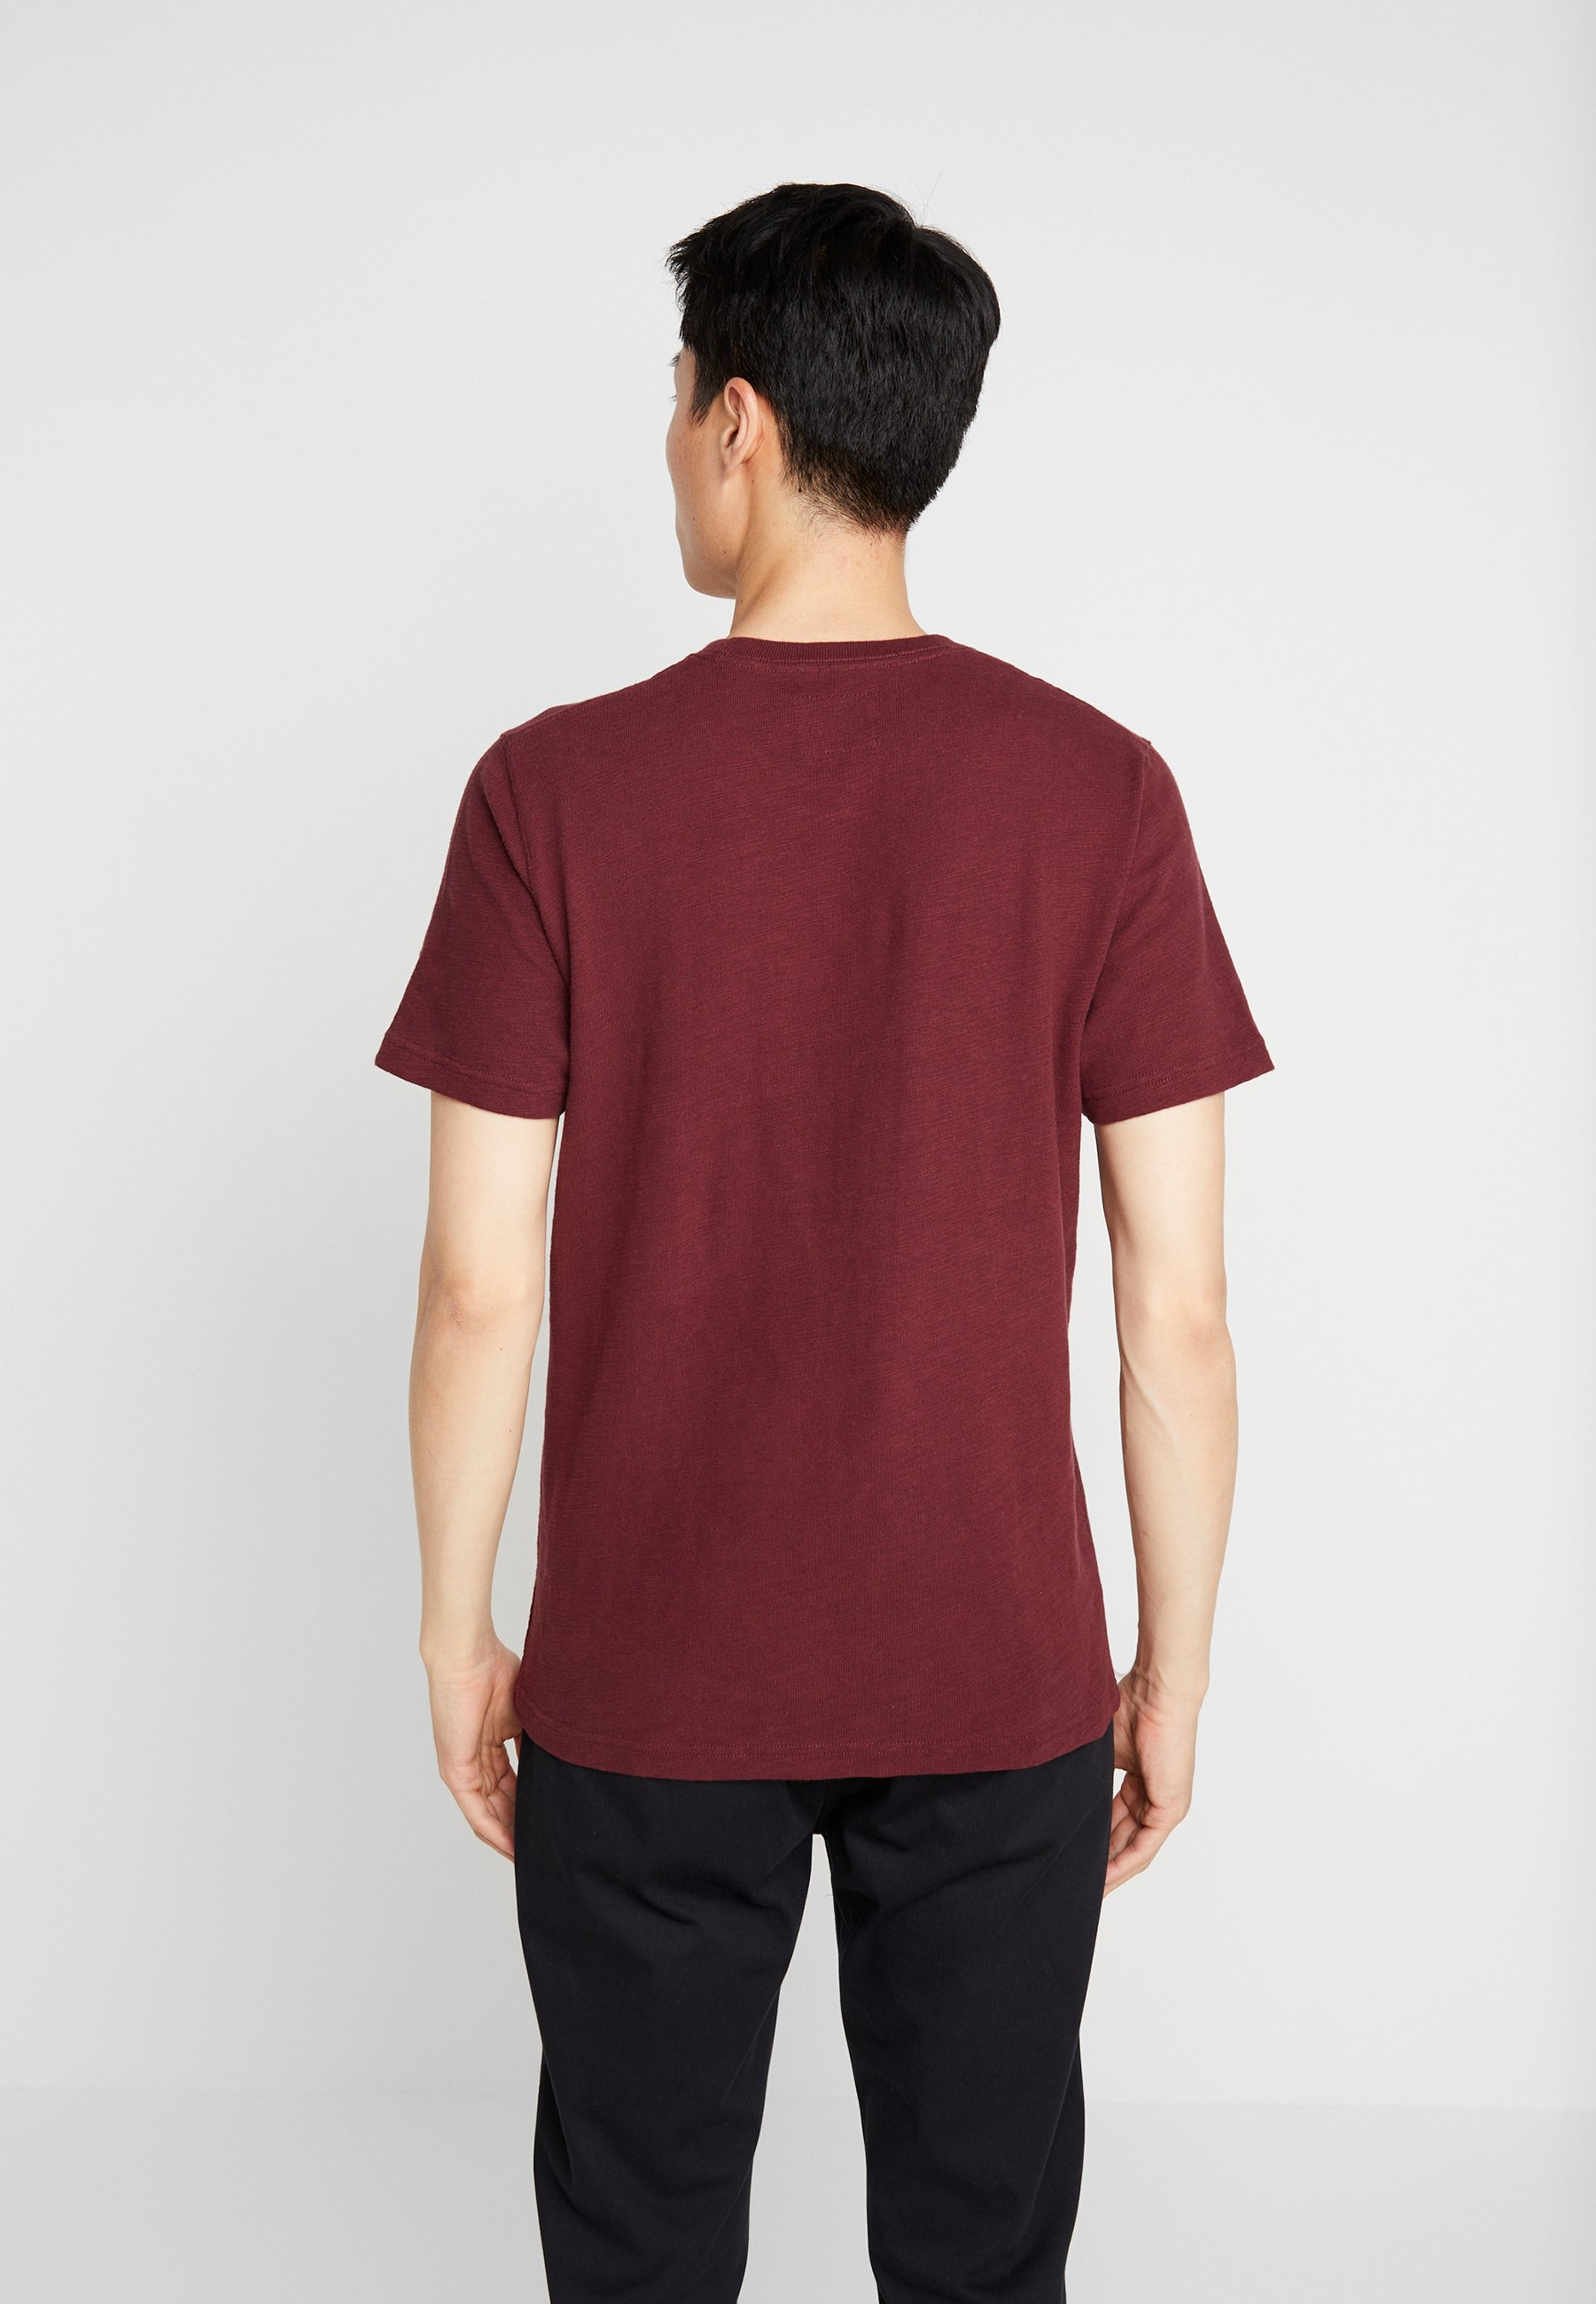 Abercrombieamp; Fitch Burg Elevated TechT shirt Imprimé 0OnP8kXw